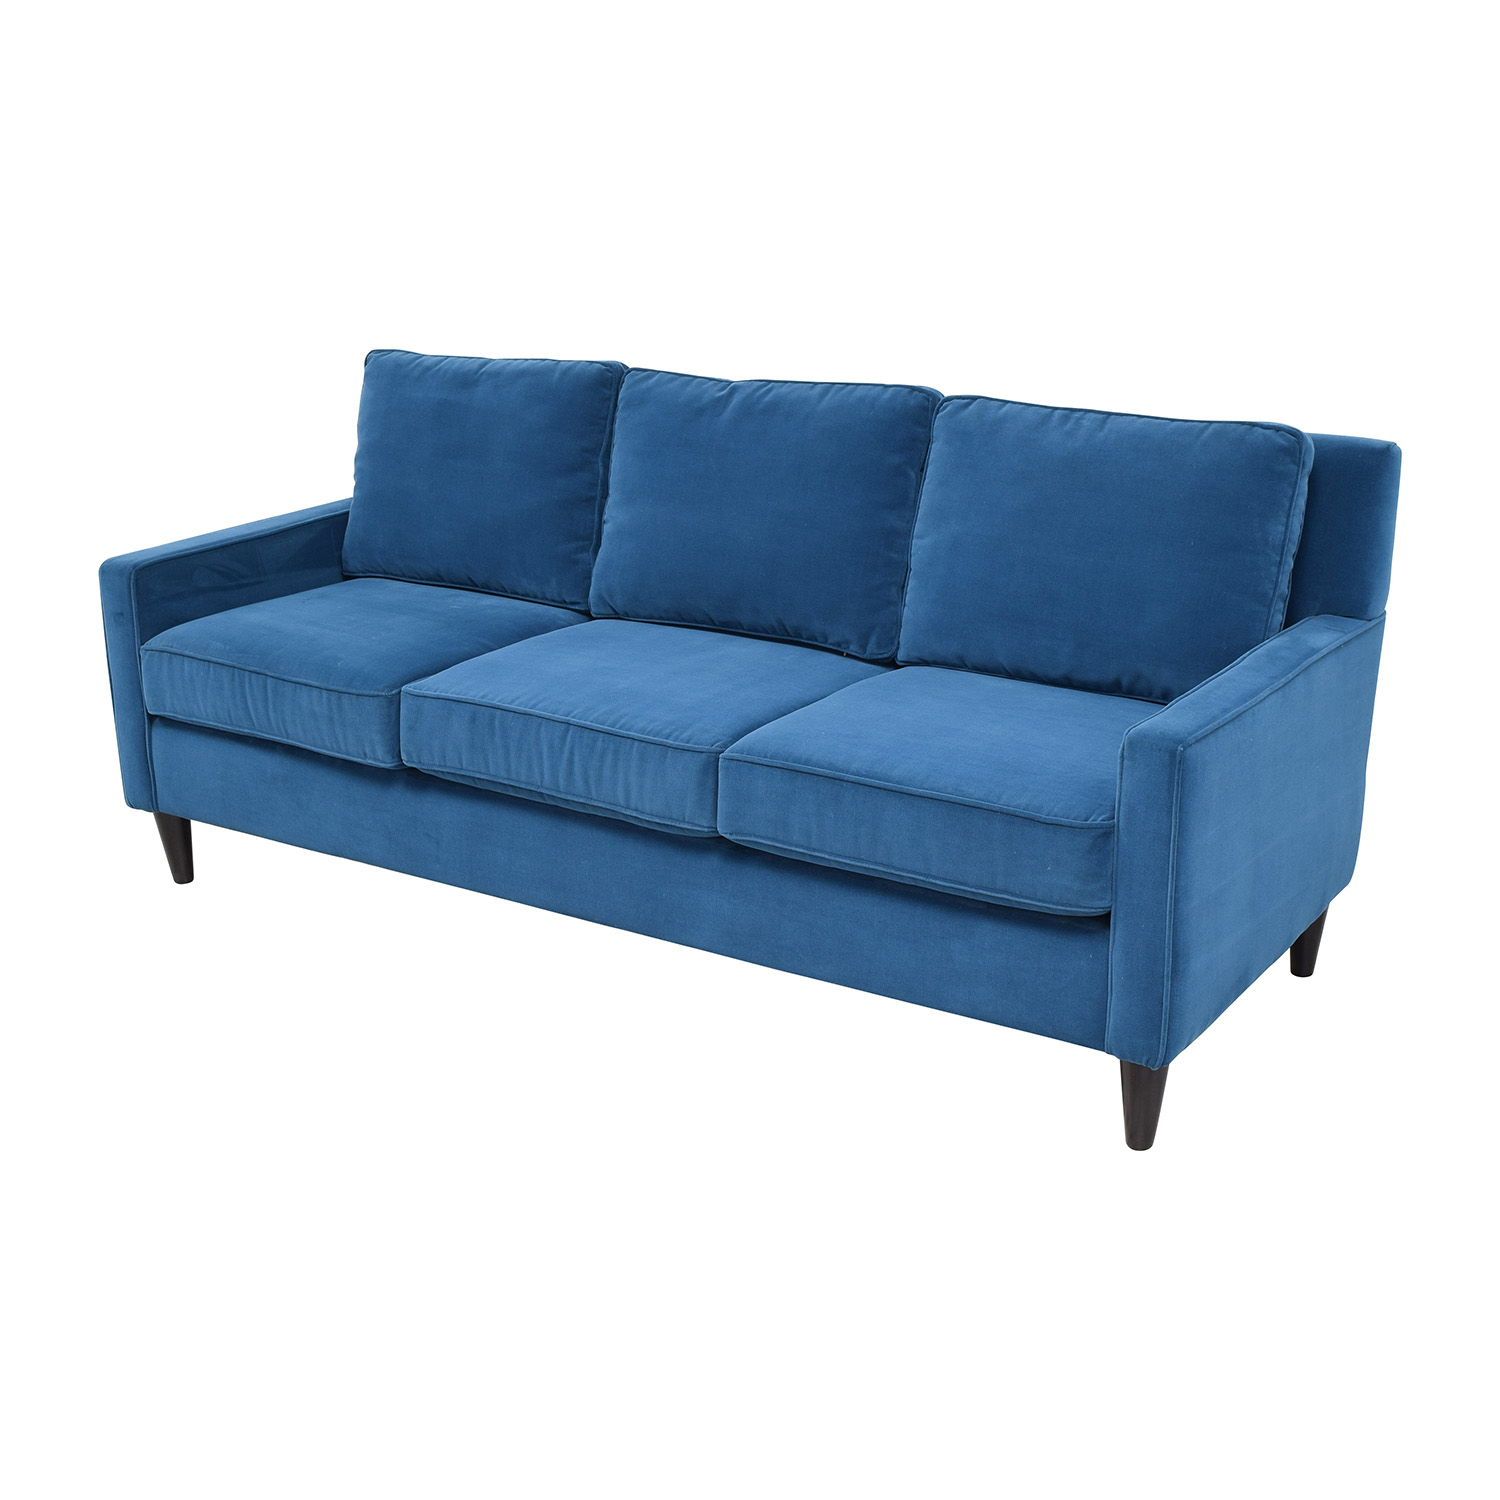 Brentwood Classics Brentwood Classics Jimmy Sofa in Admiral nyc